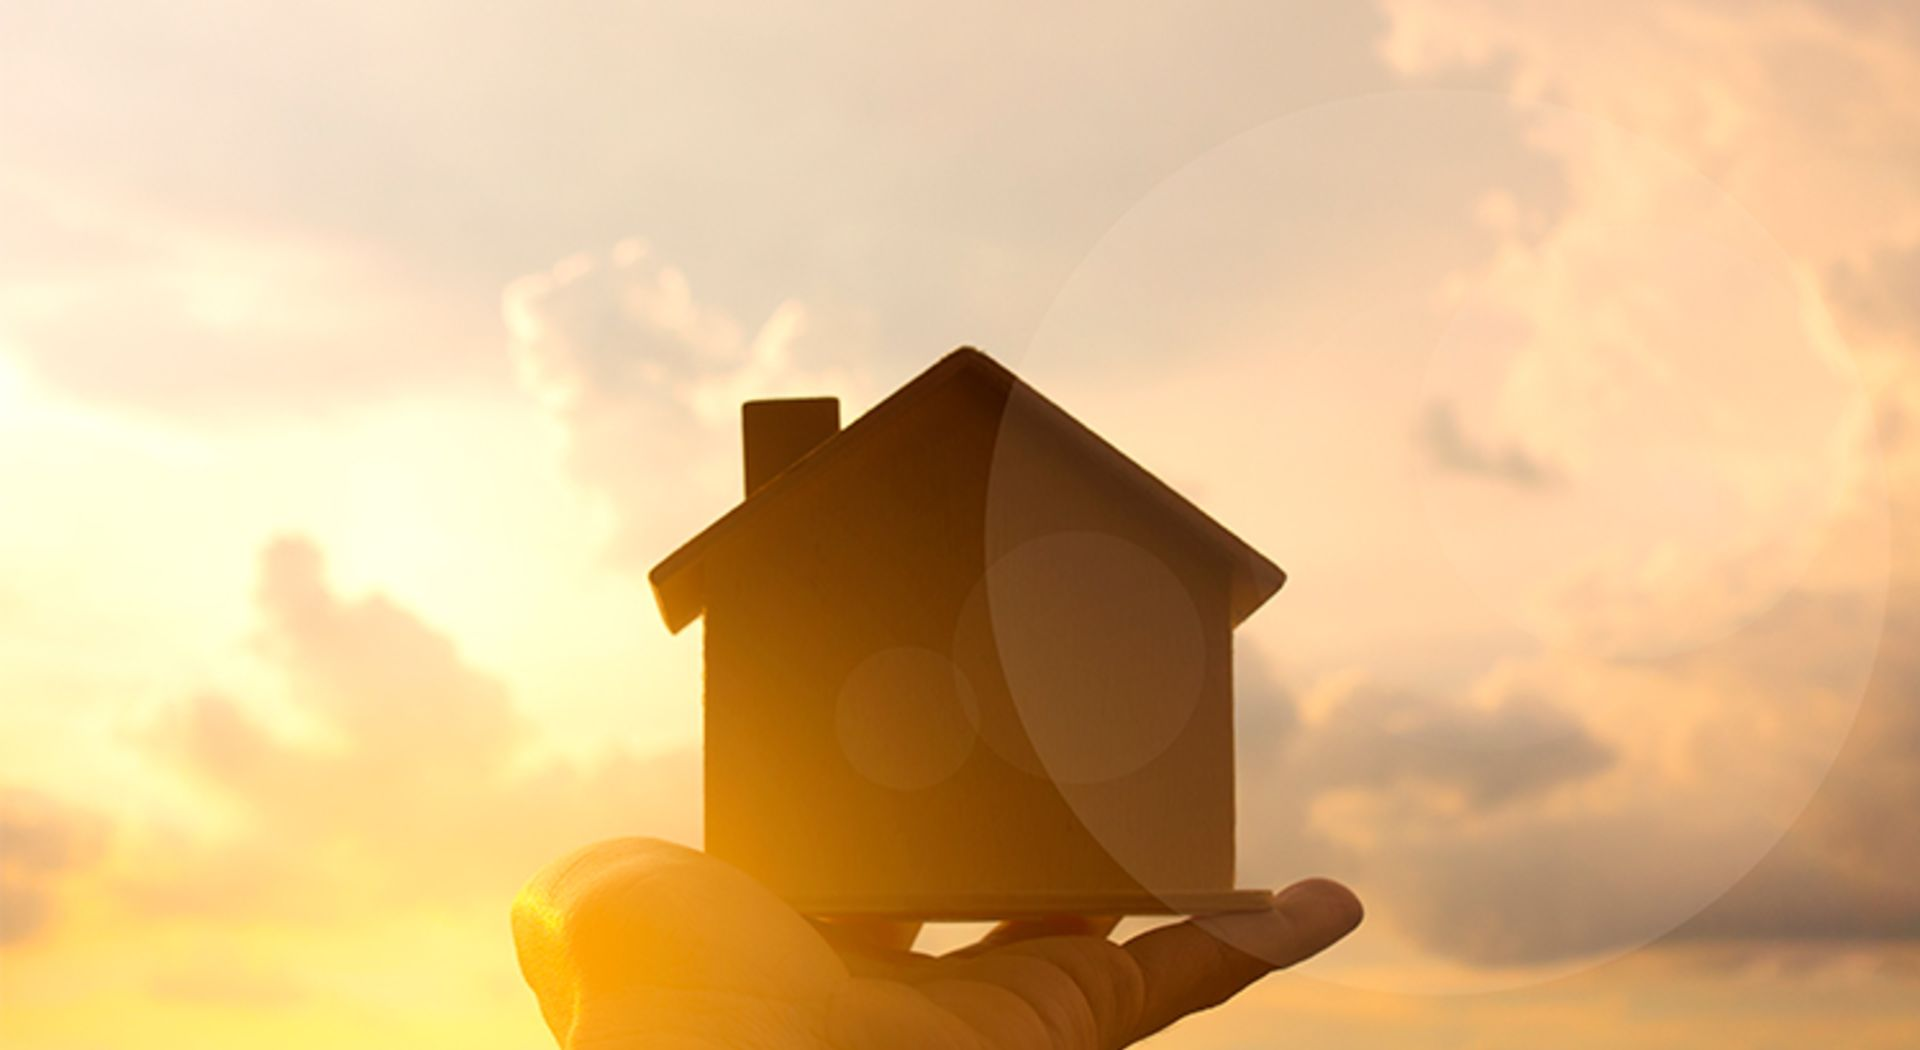 Experts Predict a Strong Housing Market for the Rest of 2019